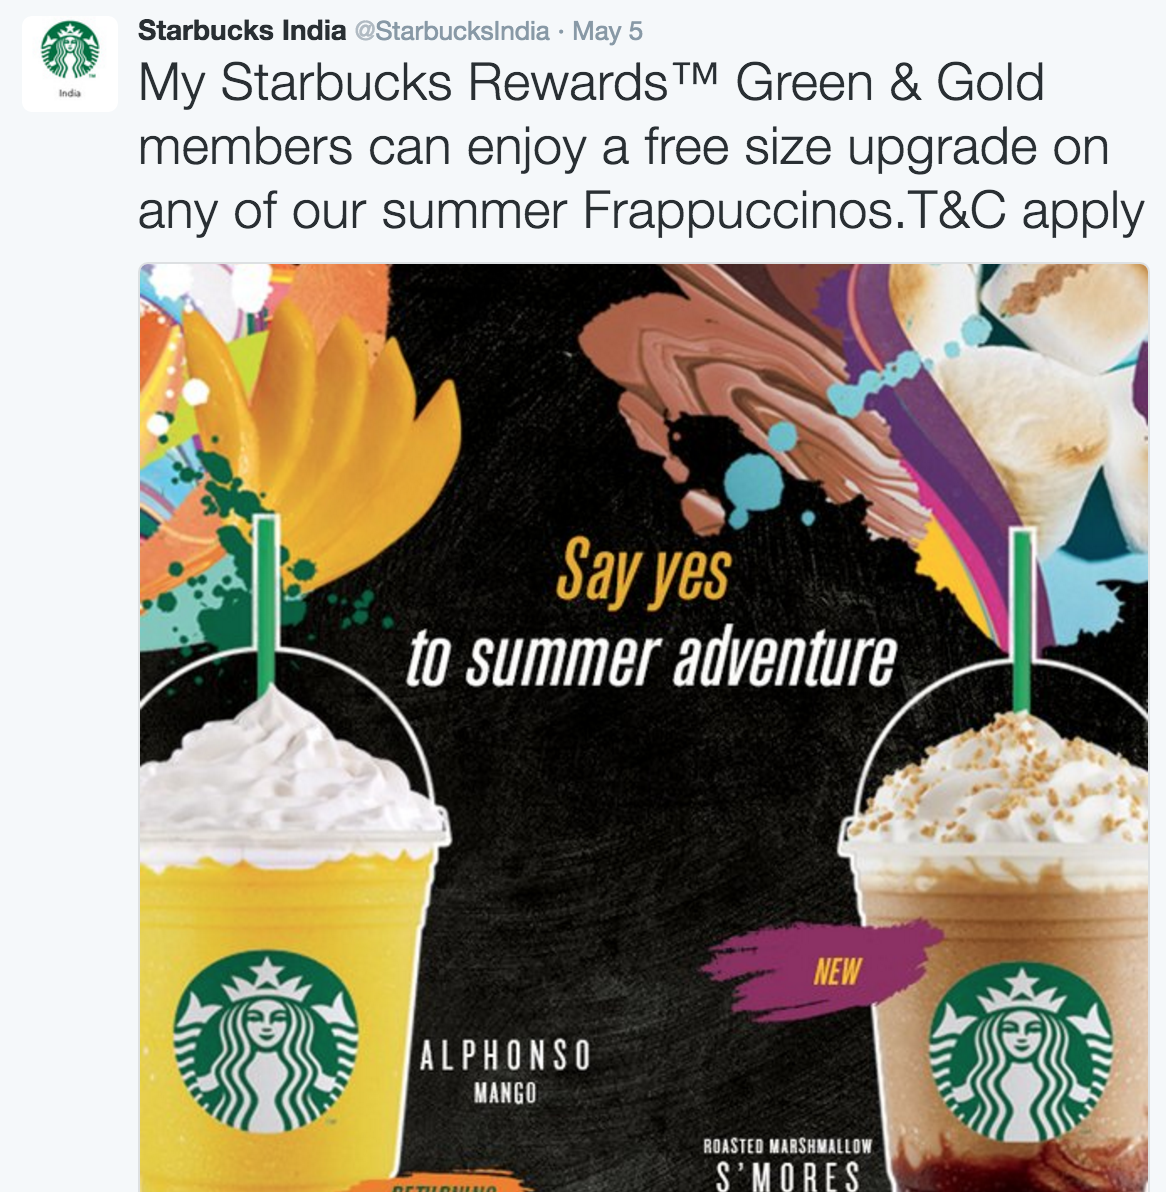 How Starbucks uses Omnichannel Marketing in India to Engage with